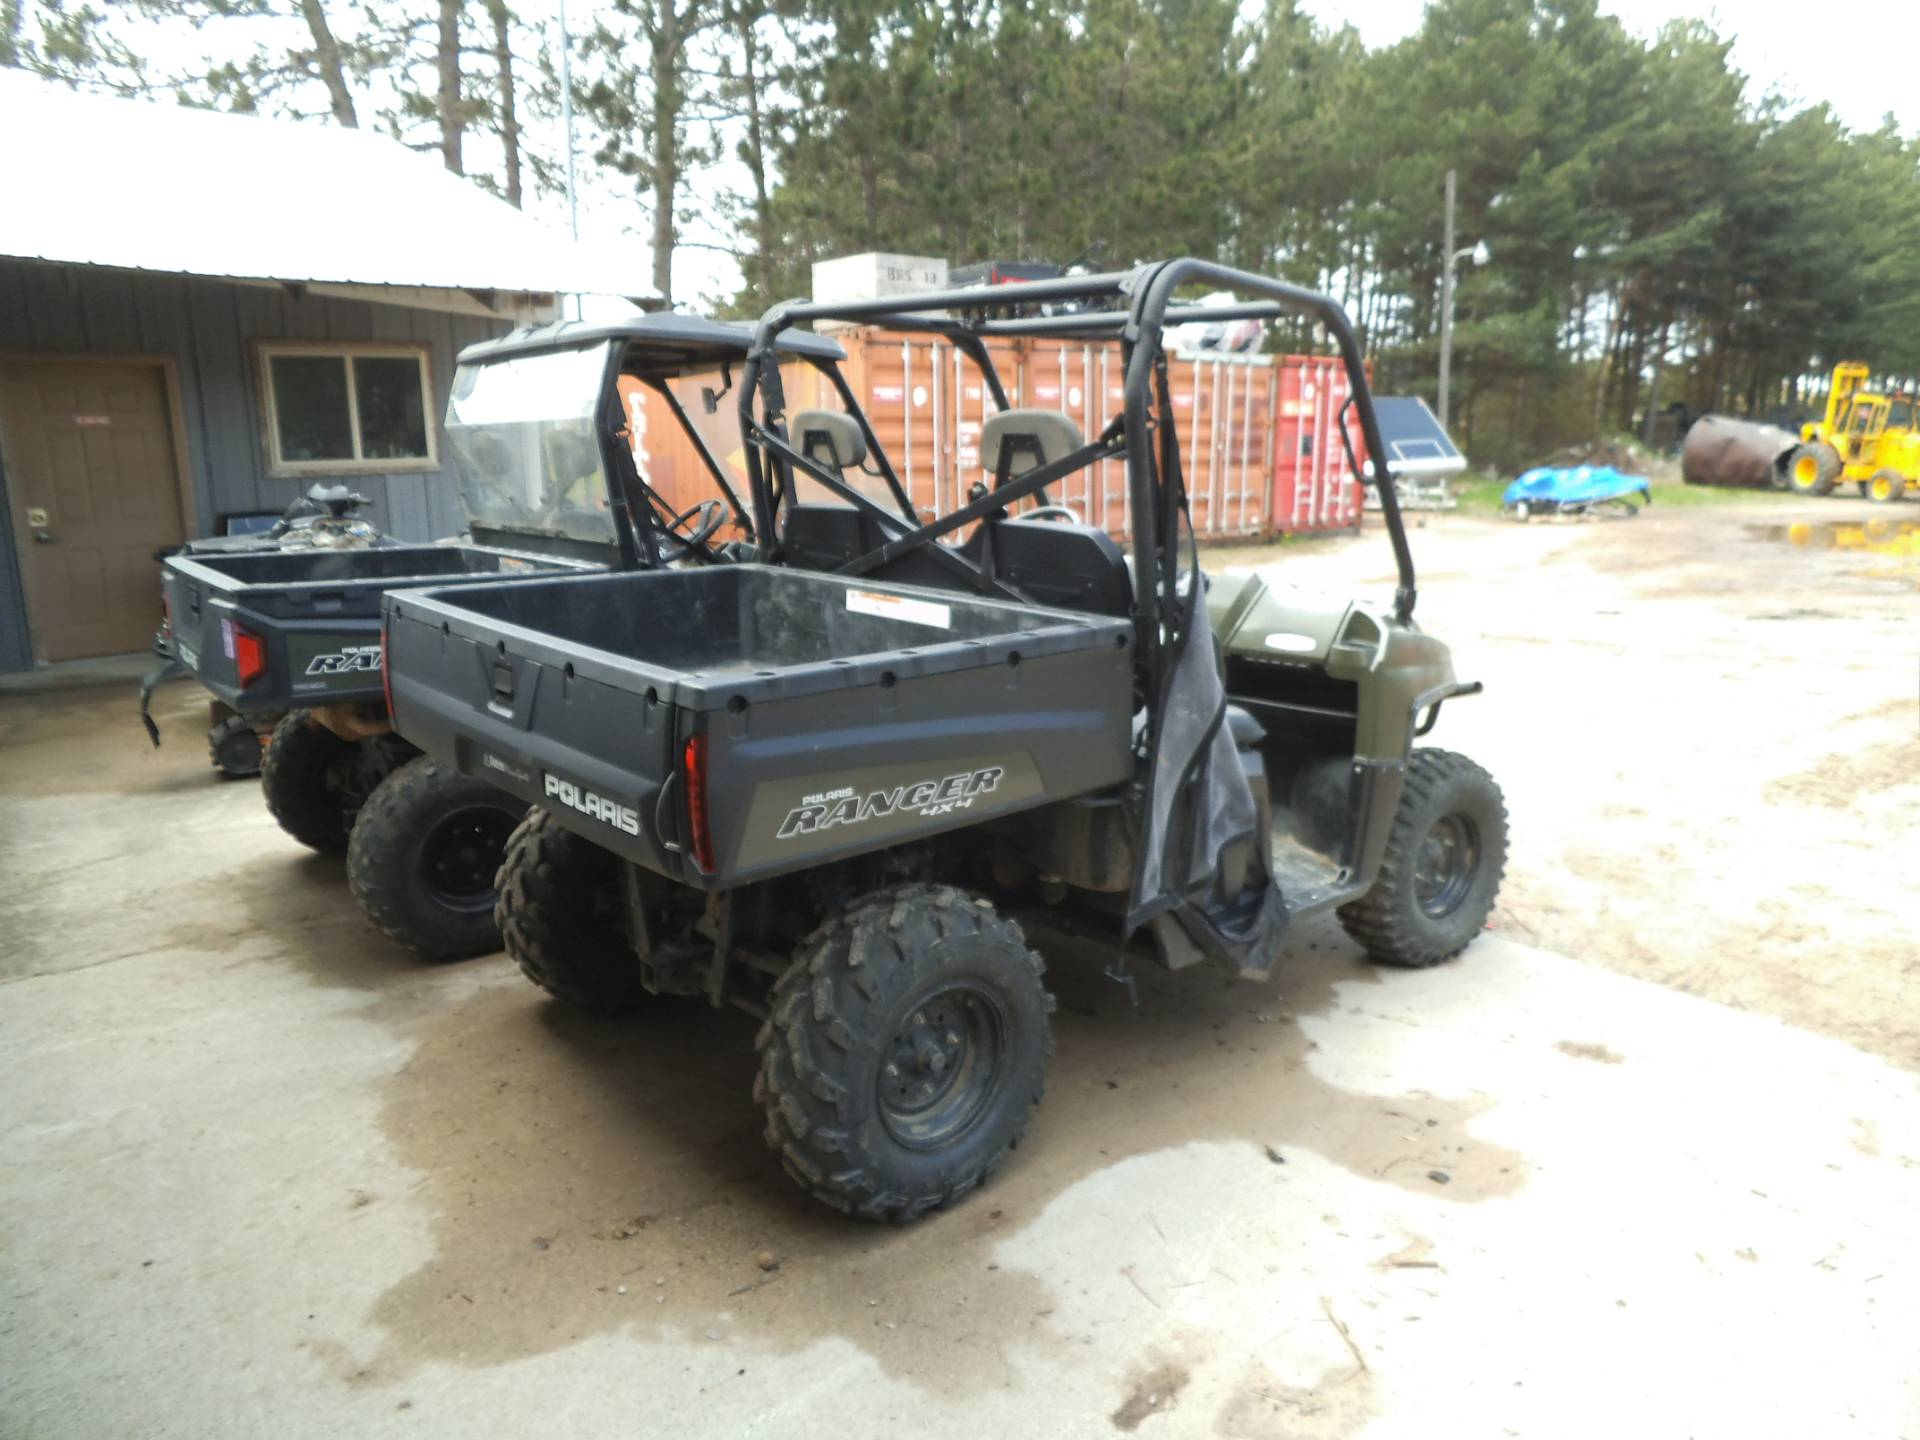 2014 Polaris Ranger 800 EFI for sale 44687